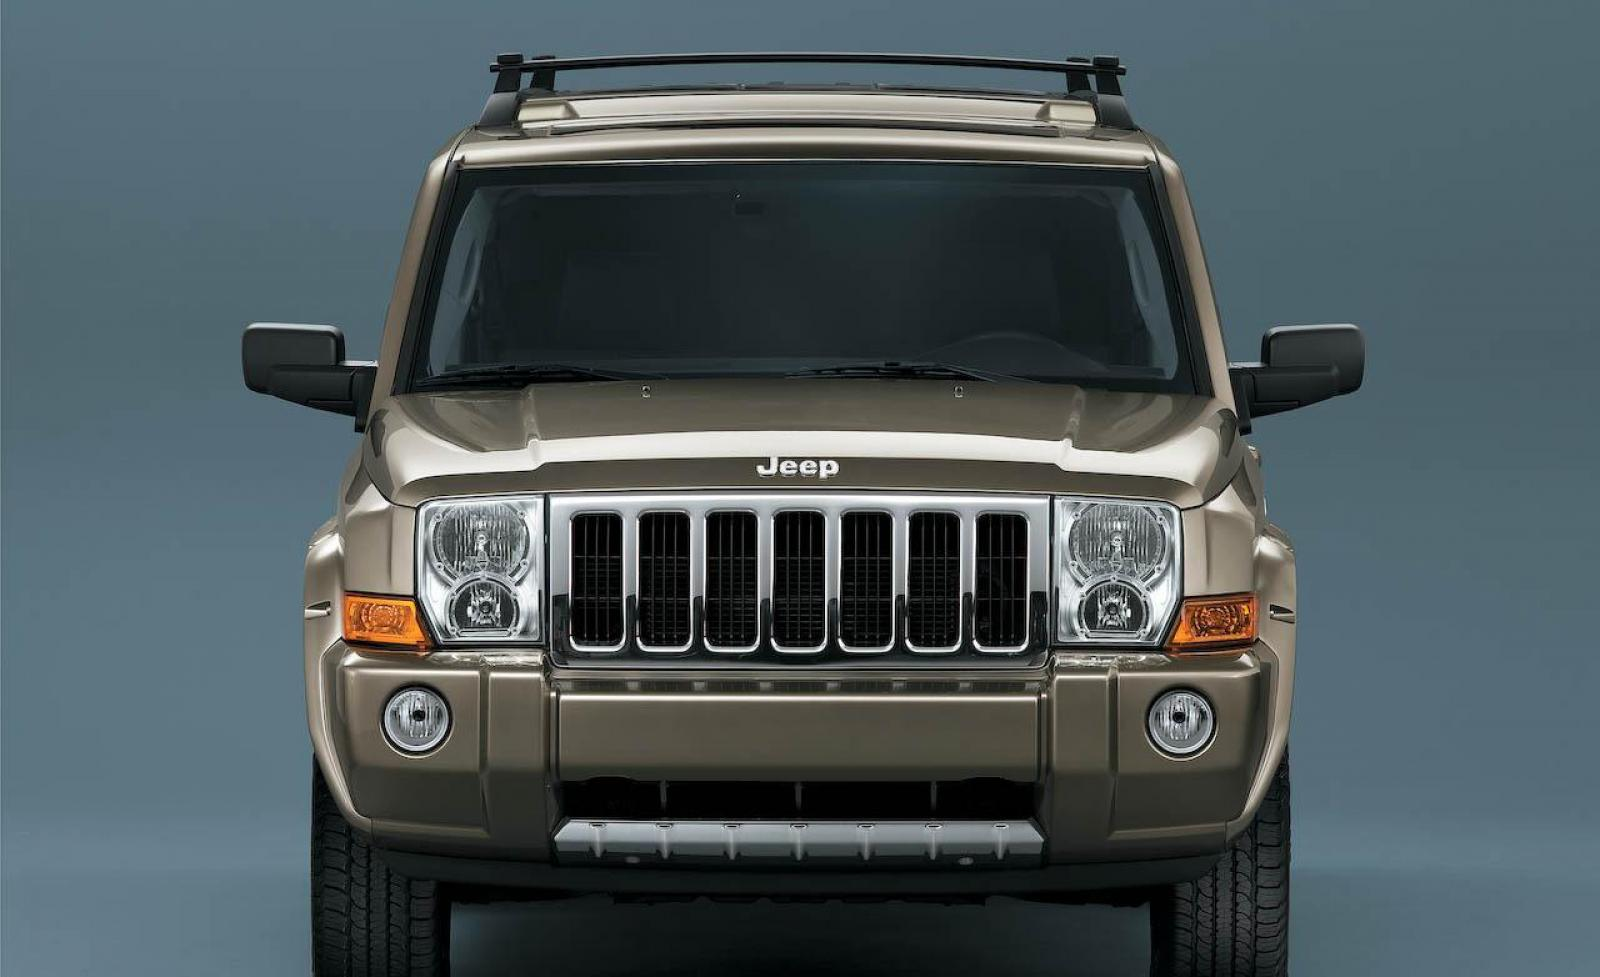 2008 jeep commander - information and photos - zombiedrive